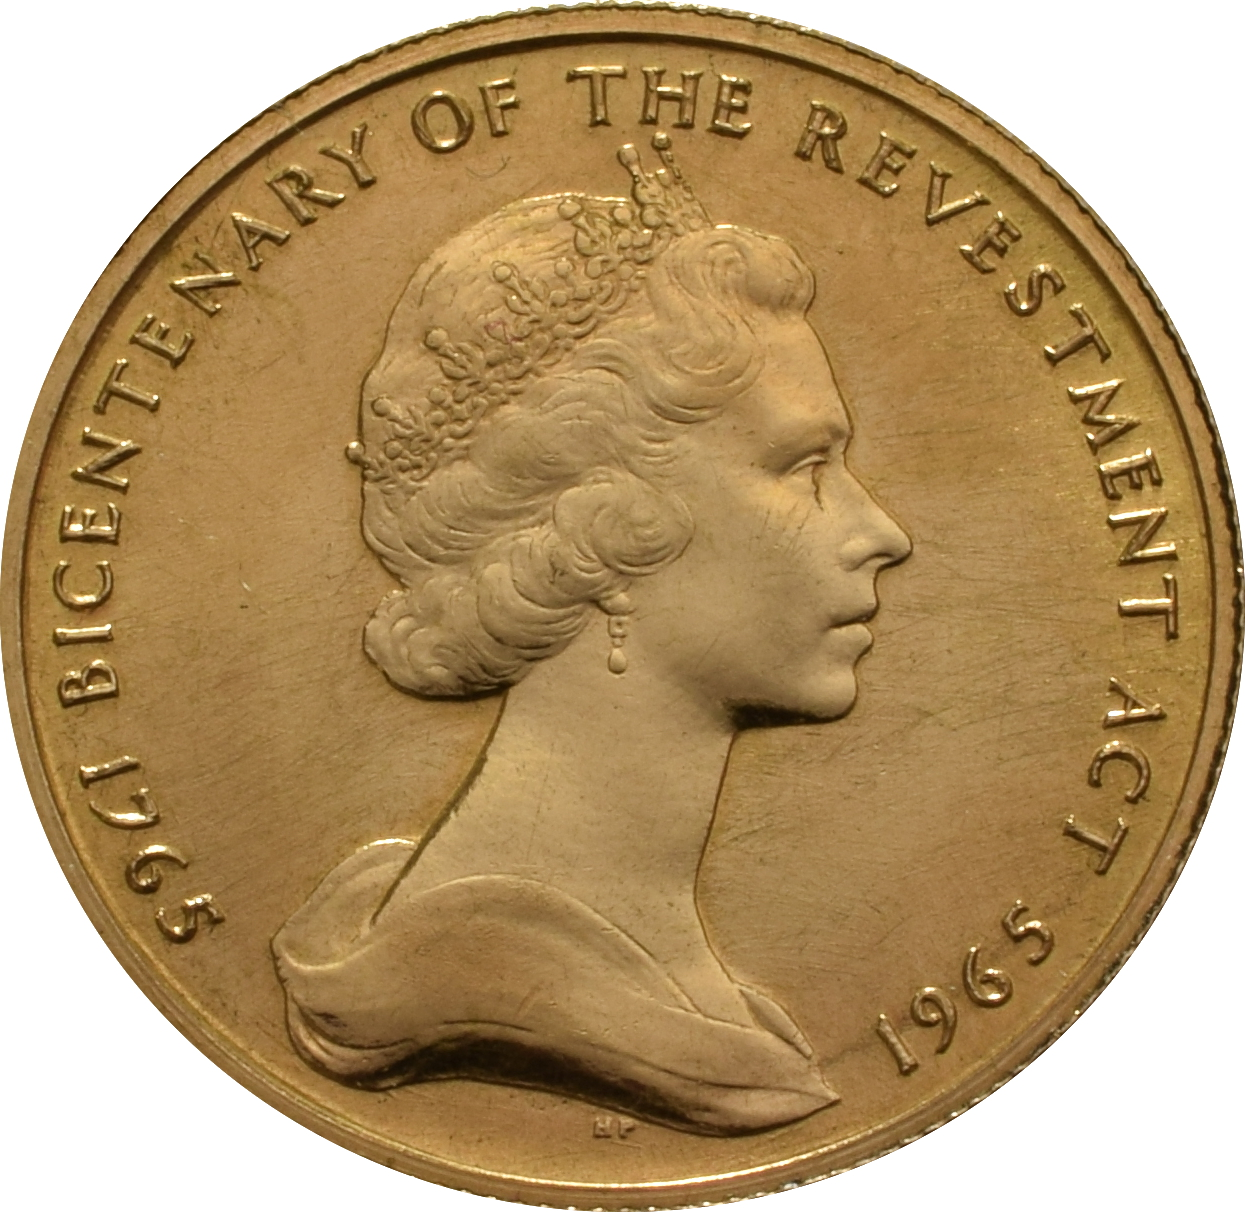 22ct 1965 Isle Of Man Gold Half Sovereign Coin Bicentenary